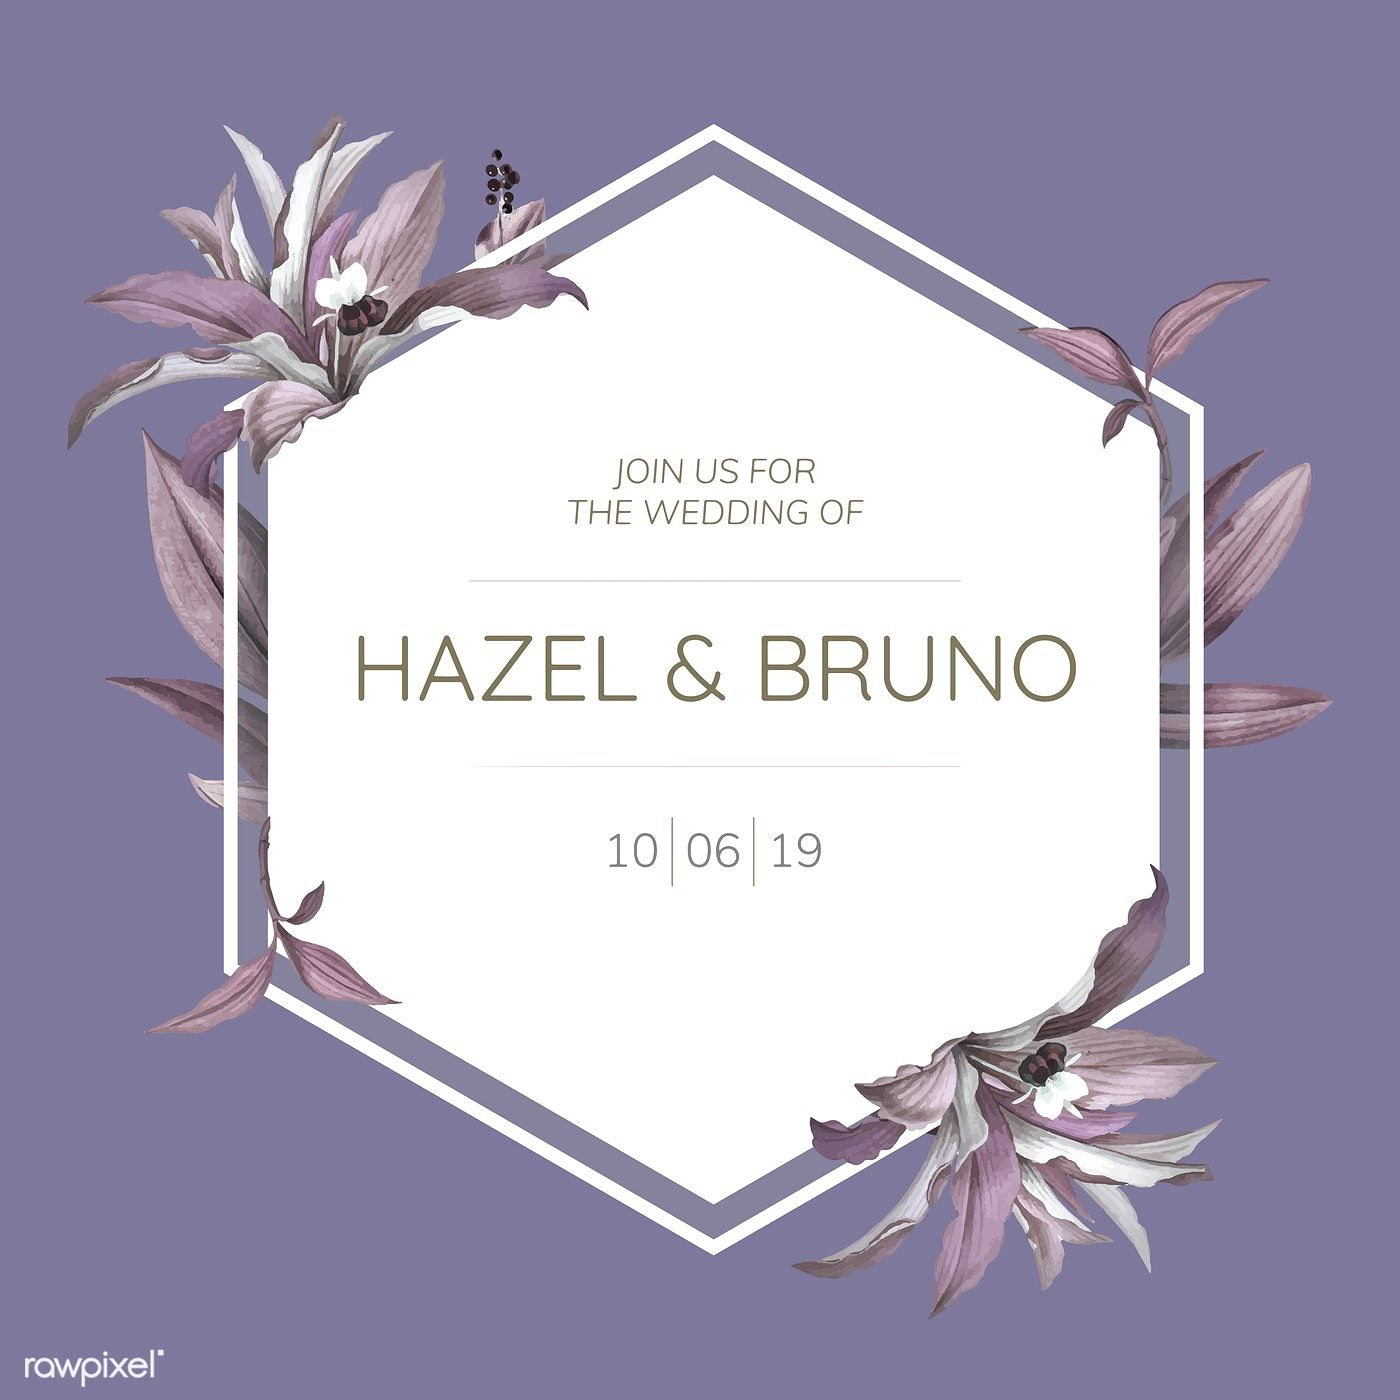 Download Premium Vector Of Wedding Frame With Purple Leaves Design